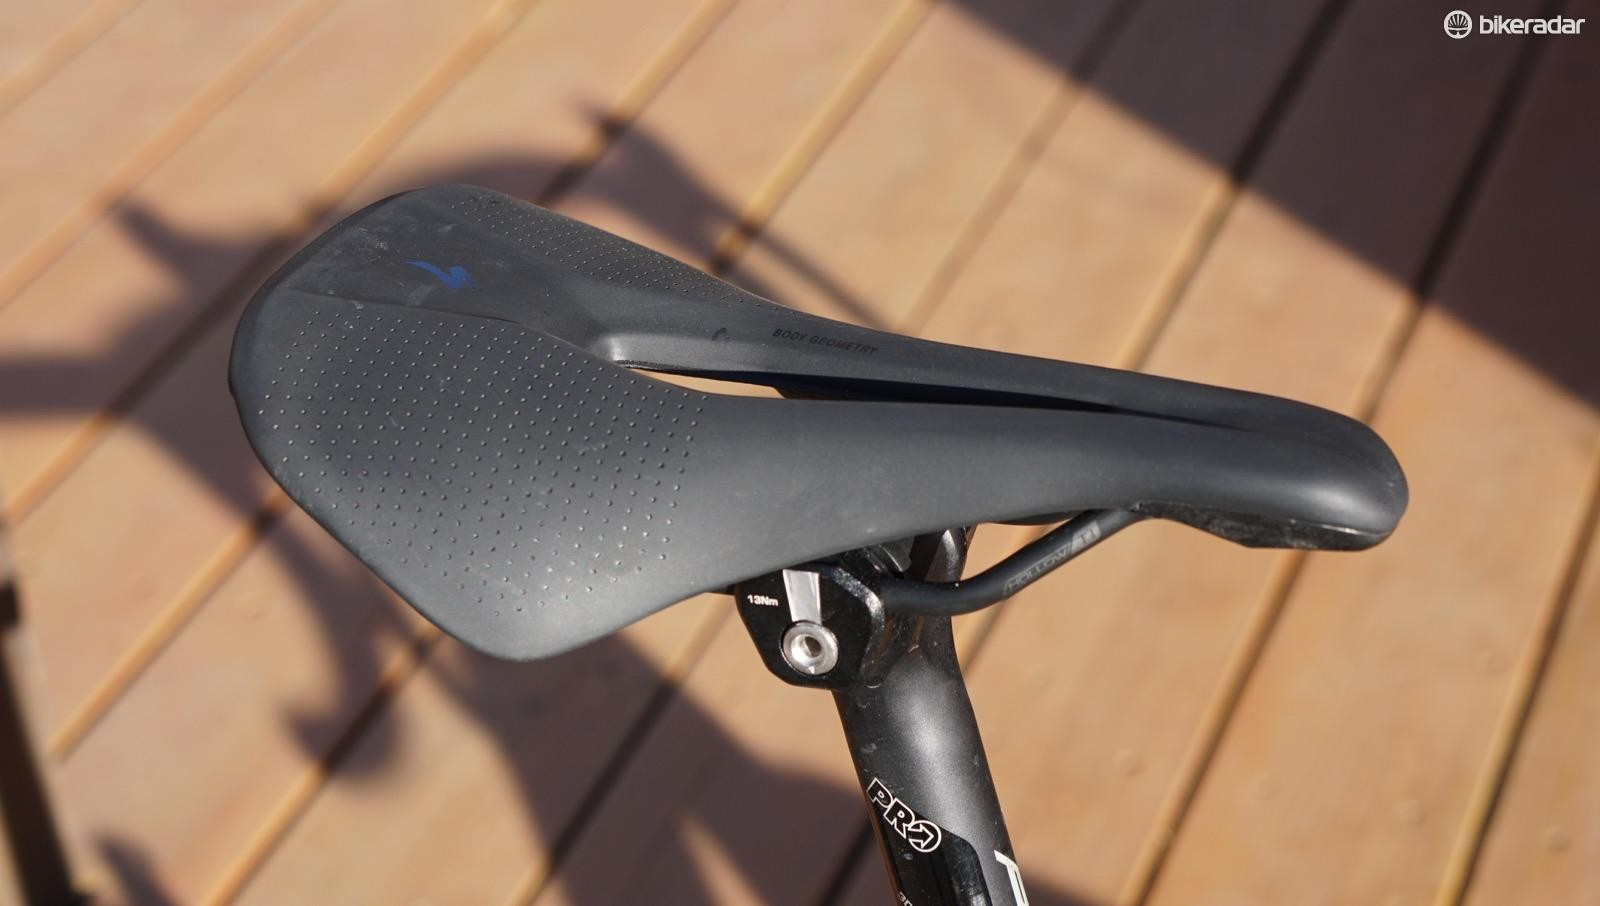 The Specialized Power Arc is a slightly more curved version of the relatively flat Power